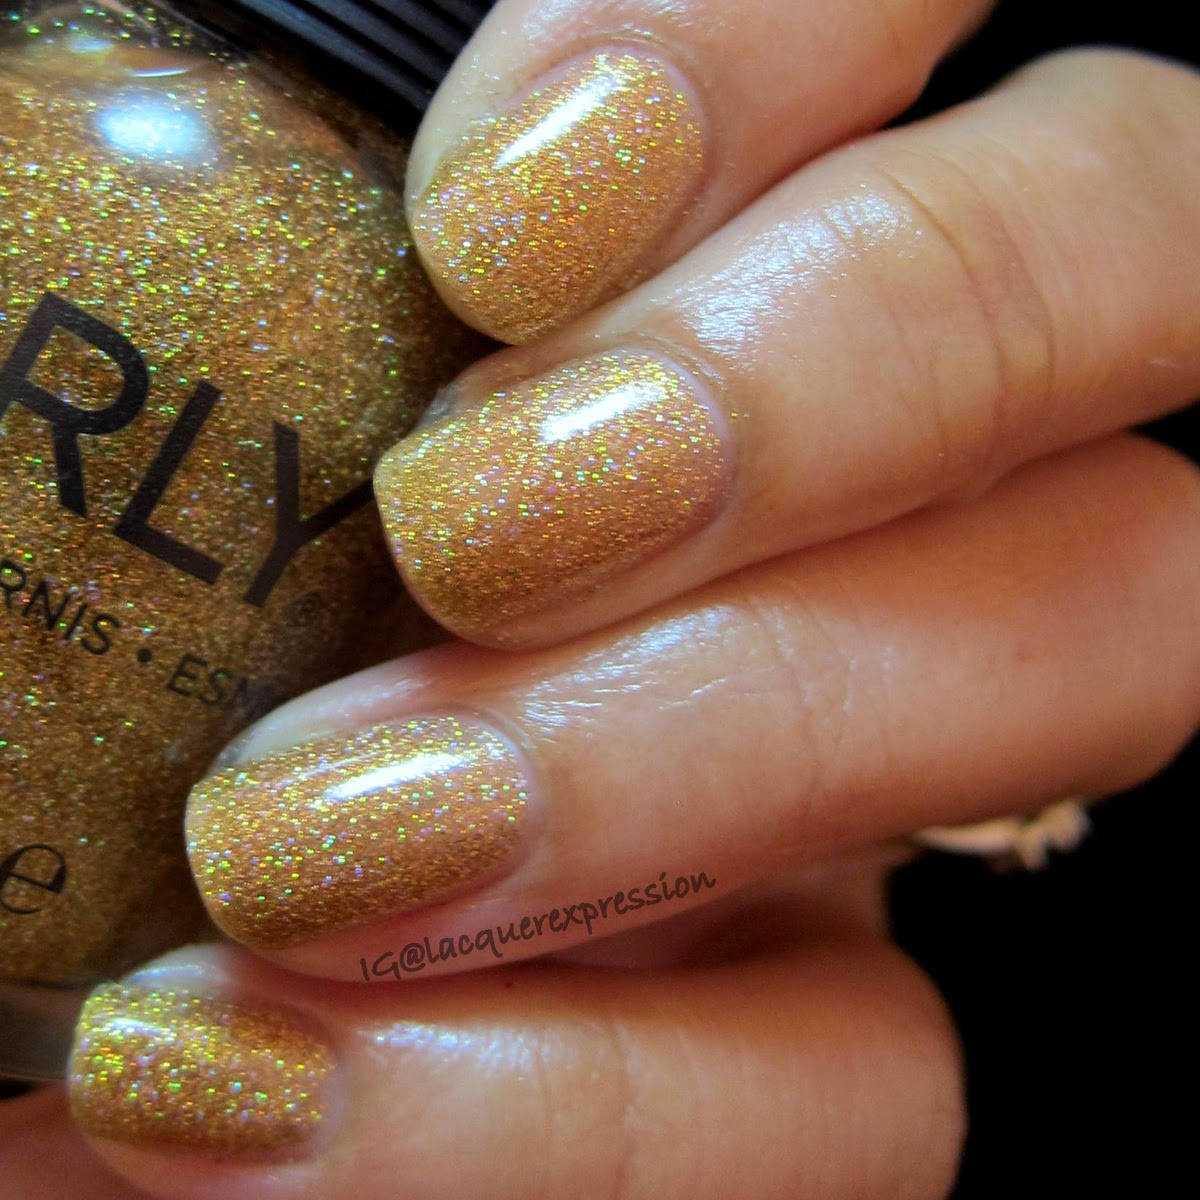 swatch of bling nail polish by orly